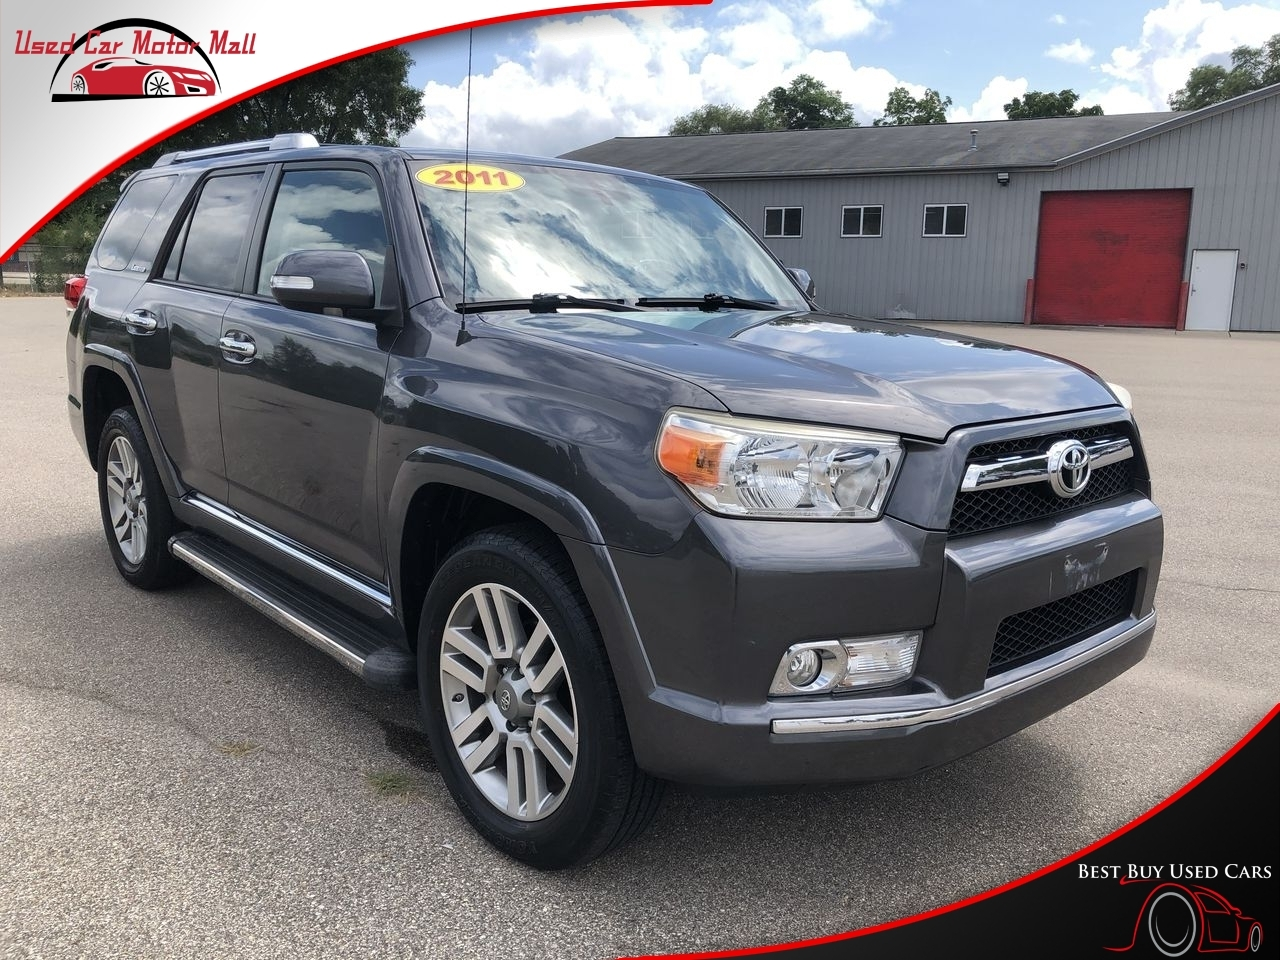 2005 Toyota 4Runner SR5, 040641, Photo 1